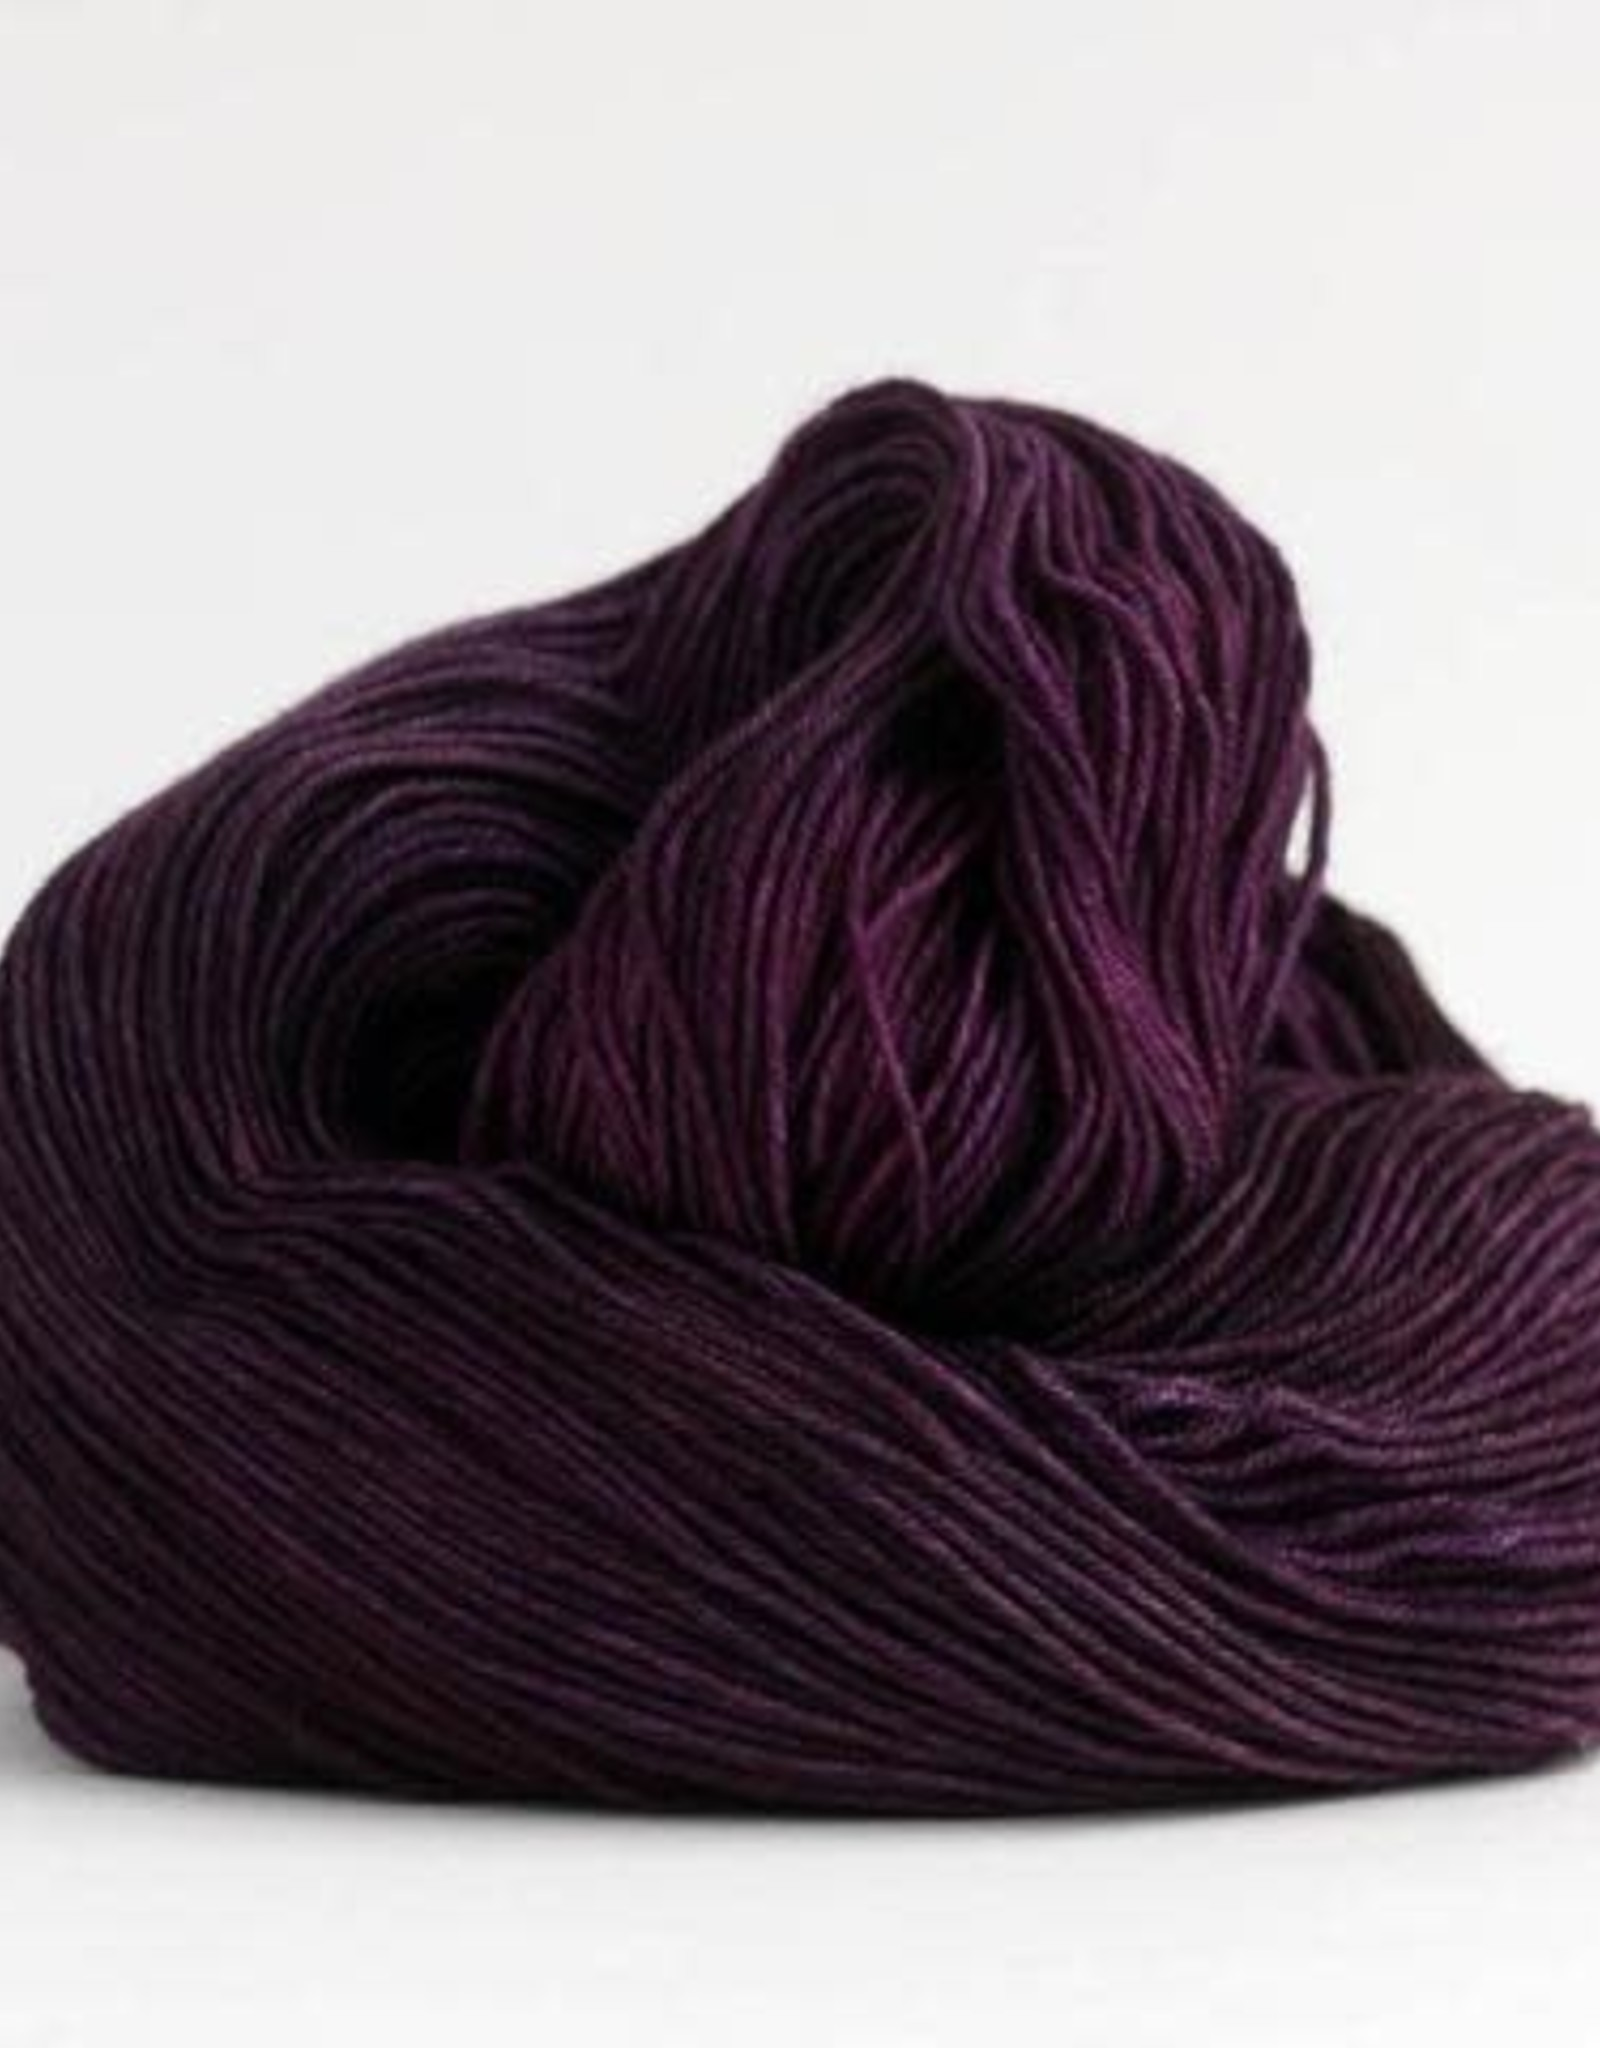 Riverside Studio - 80/20 Sock - Vampira